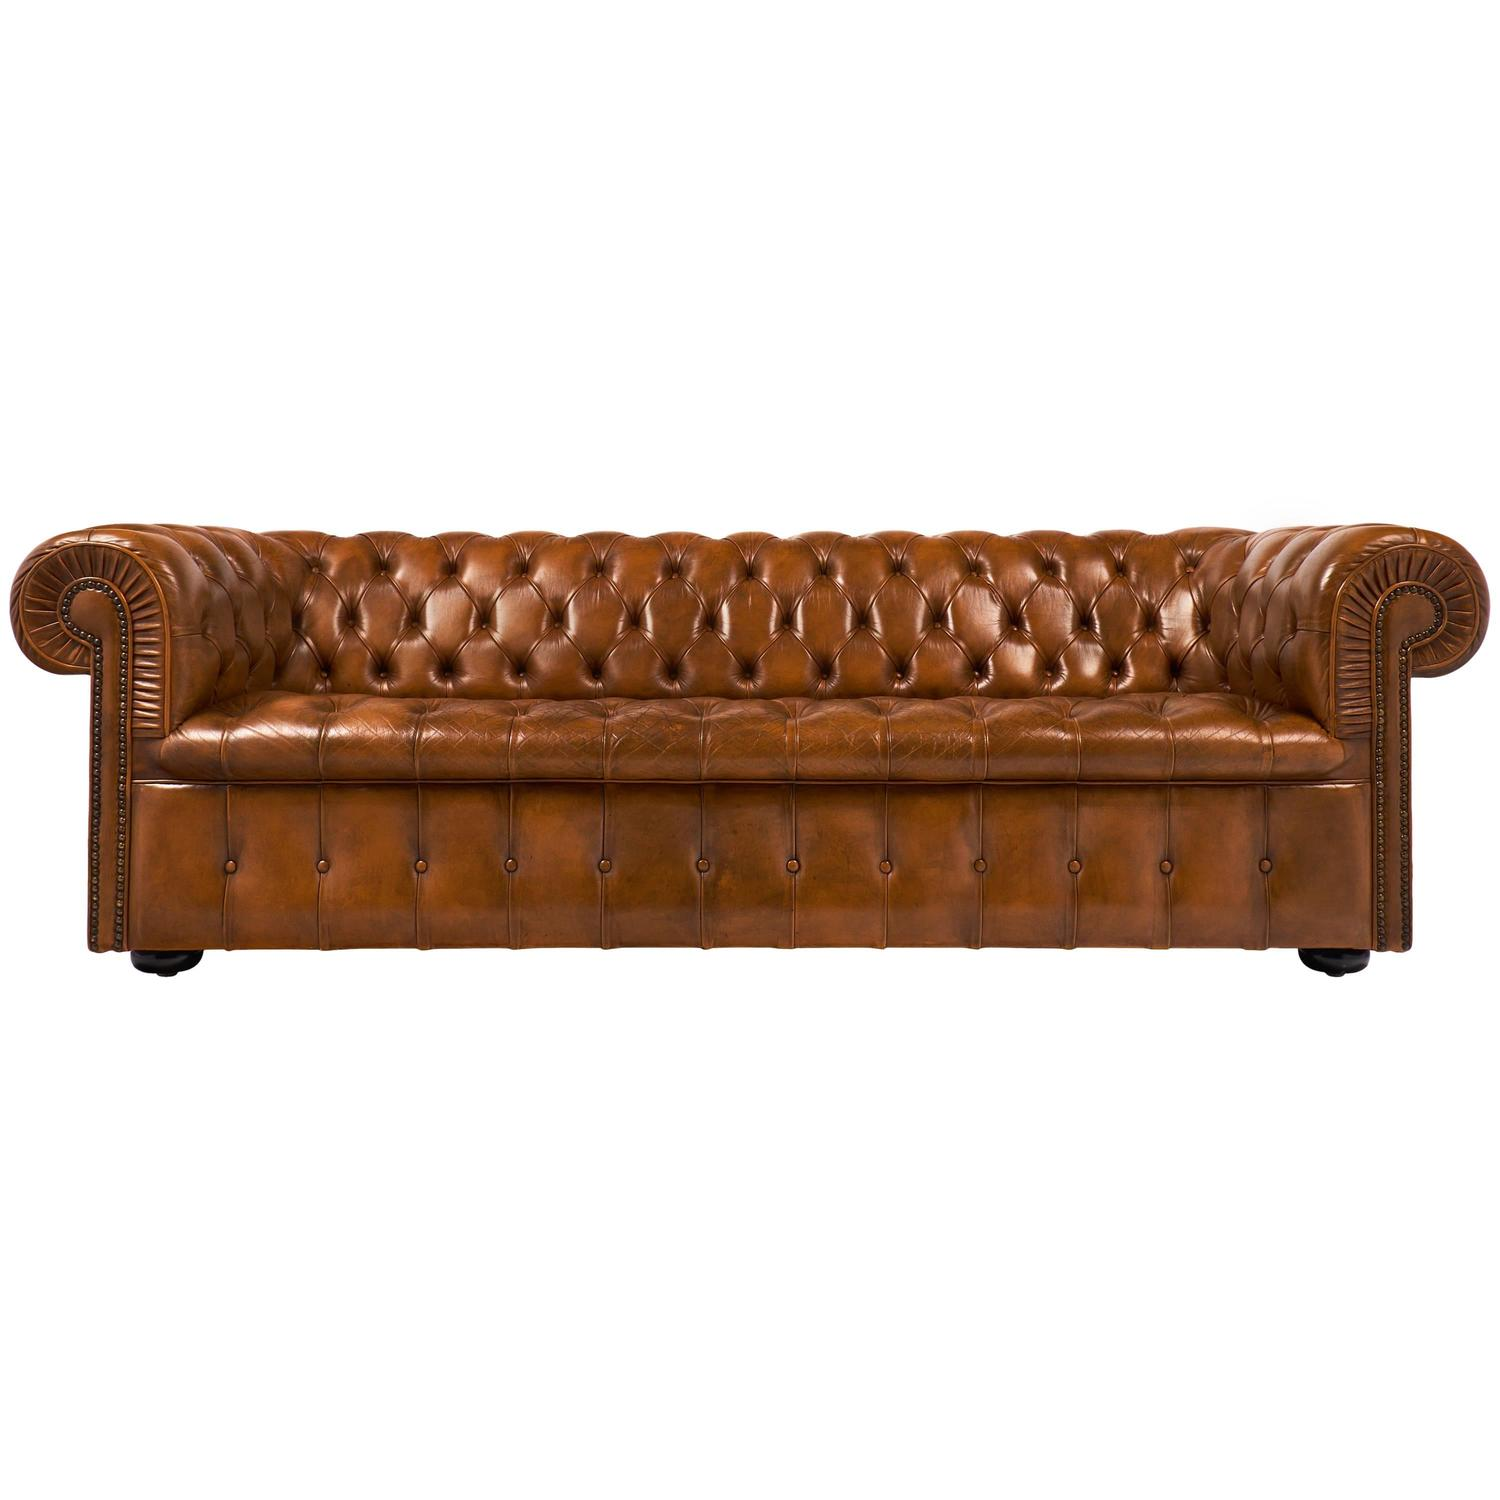 Vintage English Cognac Leather Chesterfield Sofa At 1stdibs